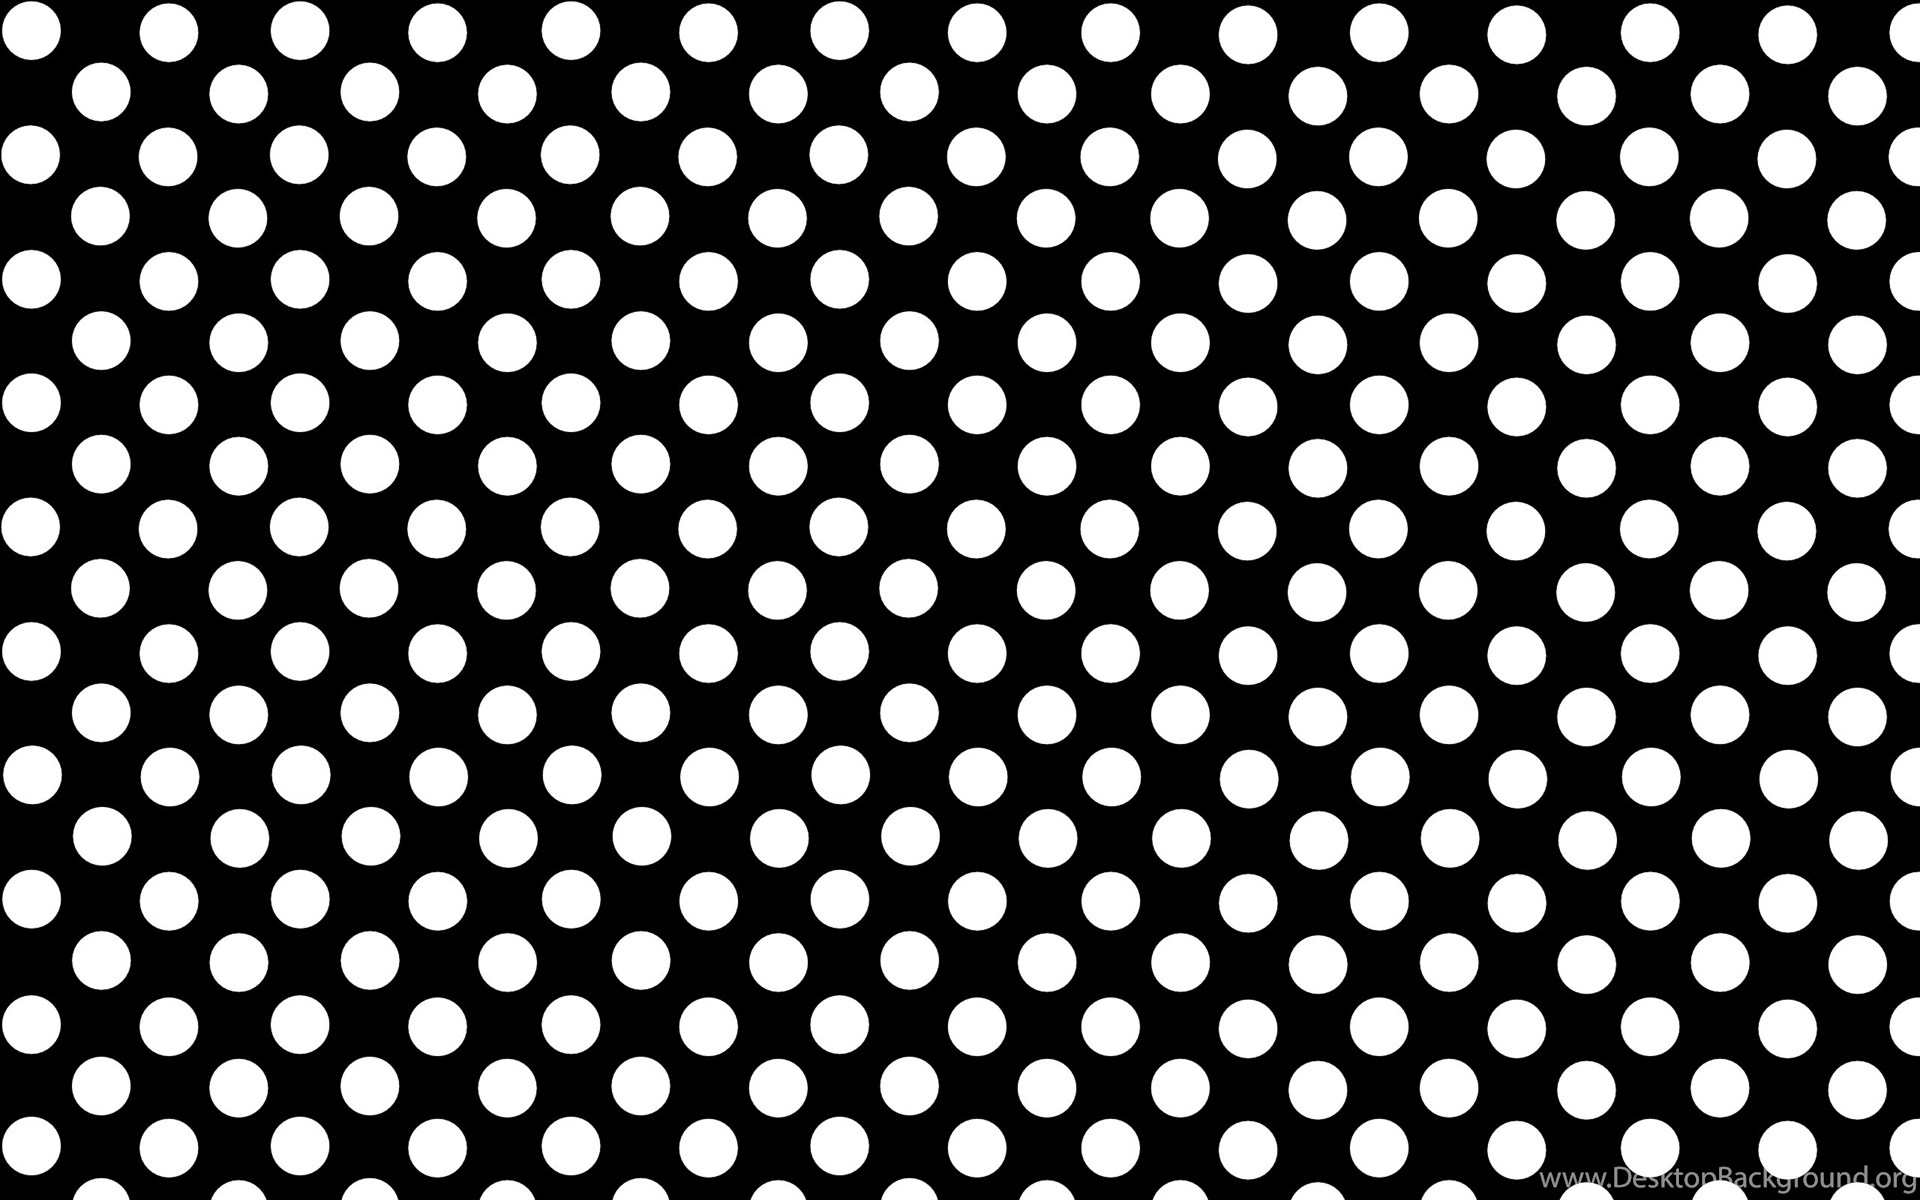 black white polka dots powerpoit backgrounds #3445